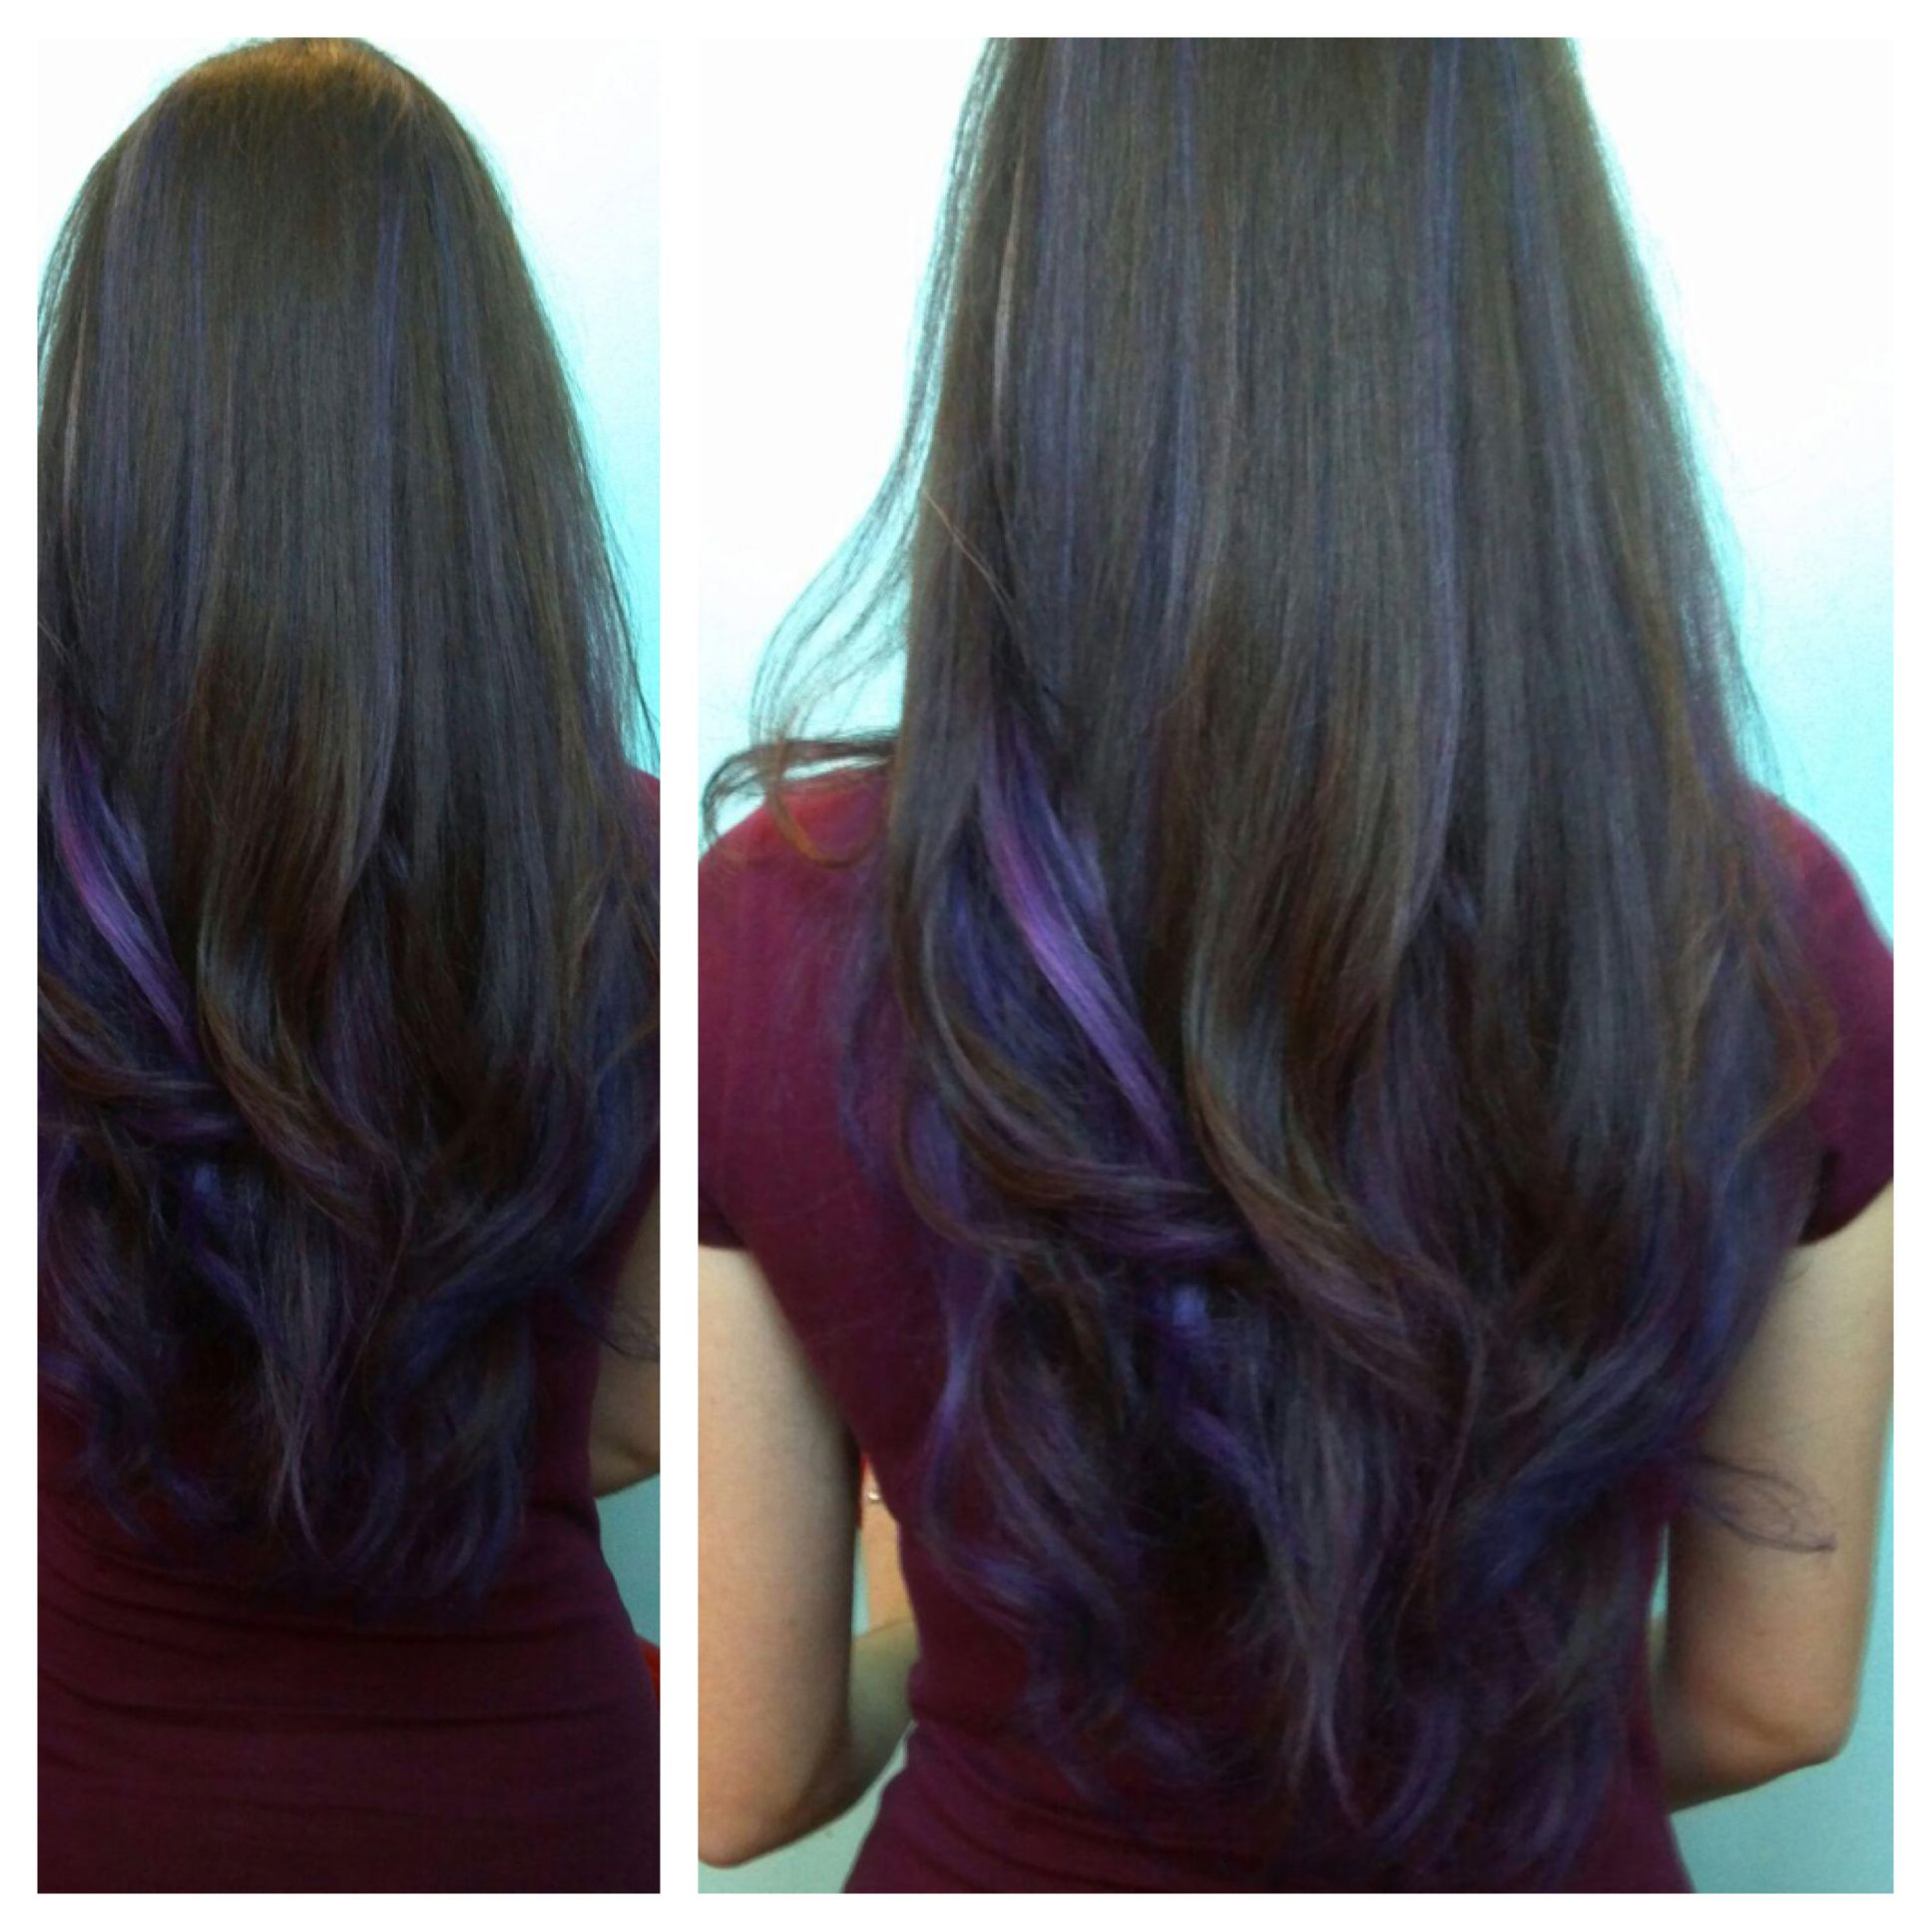 Goldwell Hair Color Dark Hair Purple Highlights Peekaboo Hair Hair Color Purple Hair Highlights